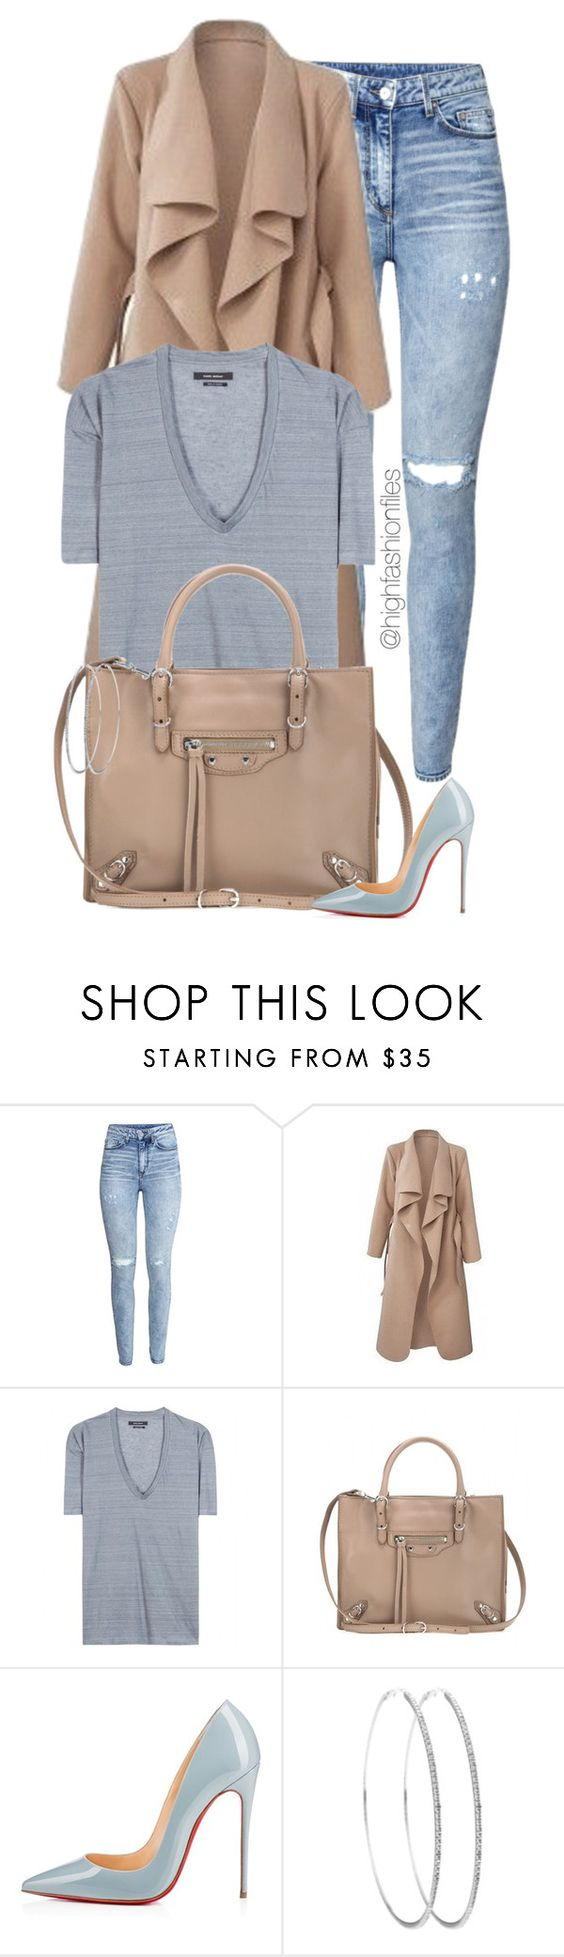 """Everyday Style"" by highfashionfiles ❤ liked on Polyvore featuring H&M, Isabel Marant, Balenciaga and Christian Louboutin:"